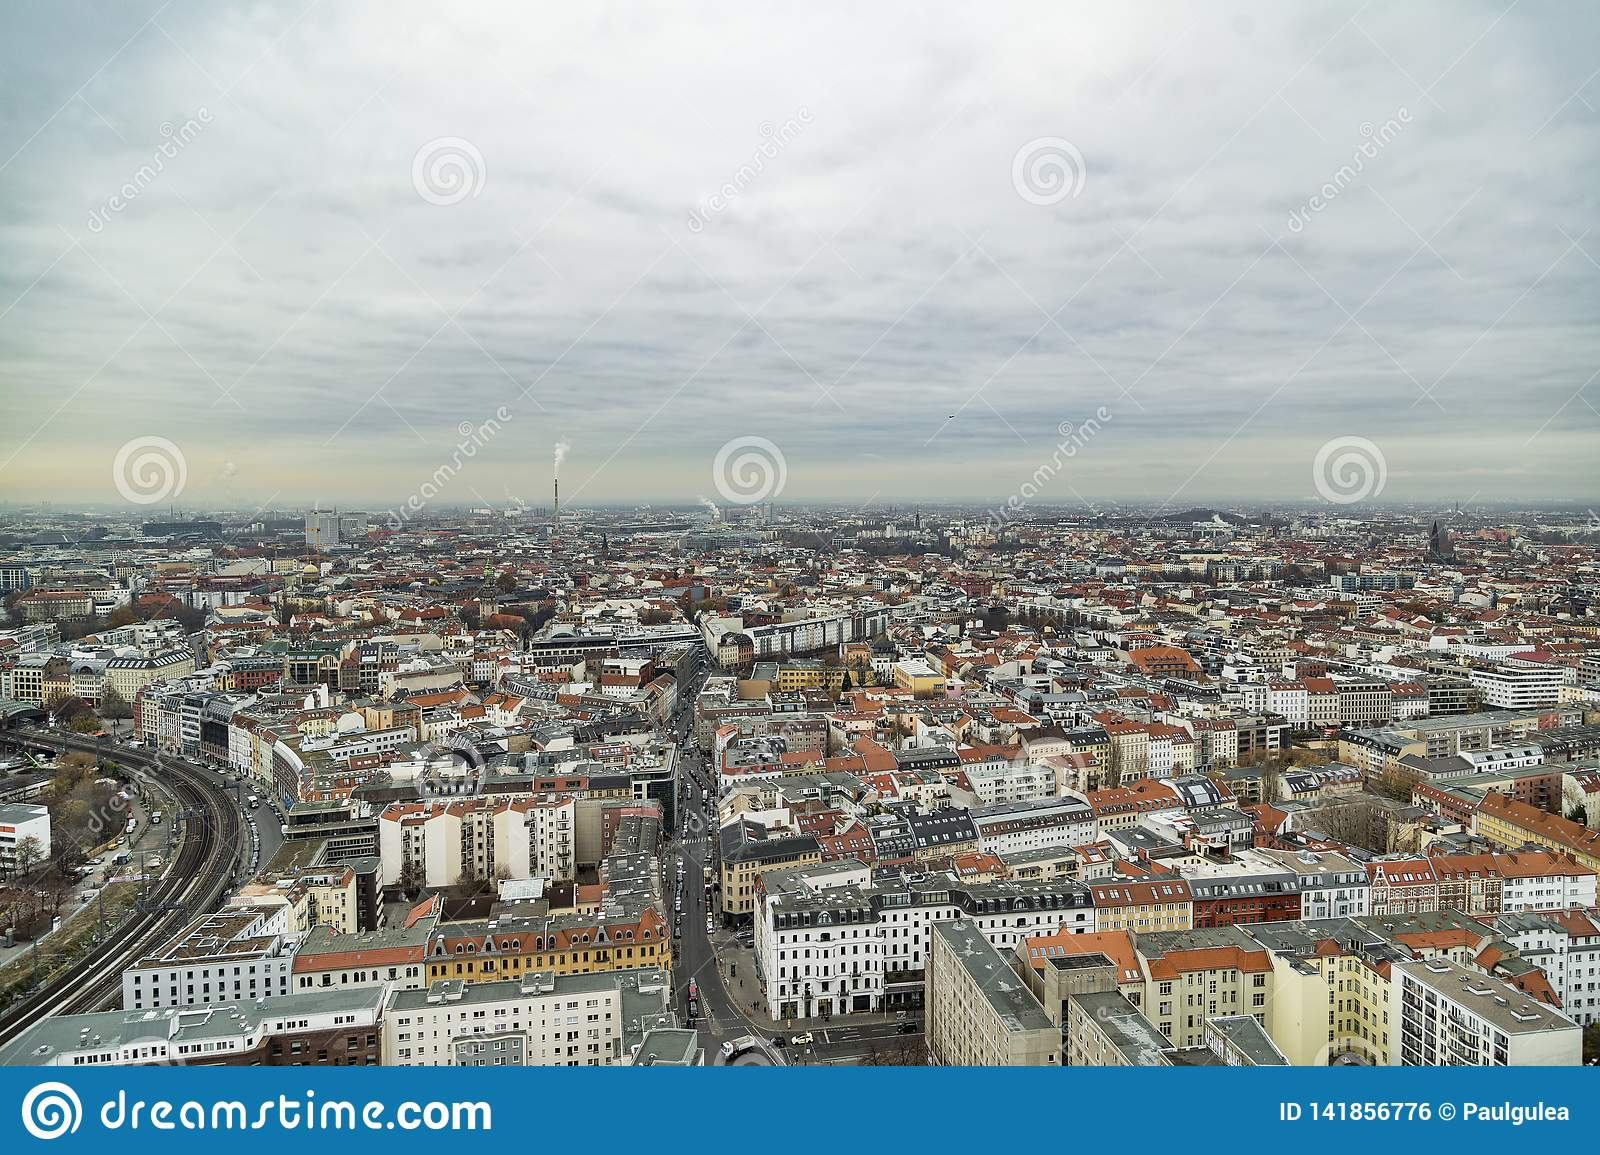 Panoramic cityscape of Berlin from the top